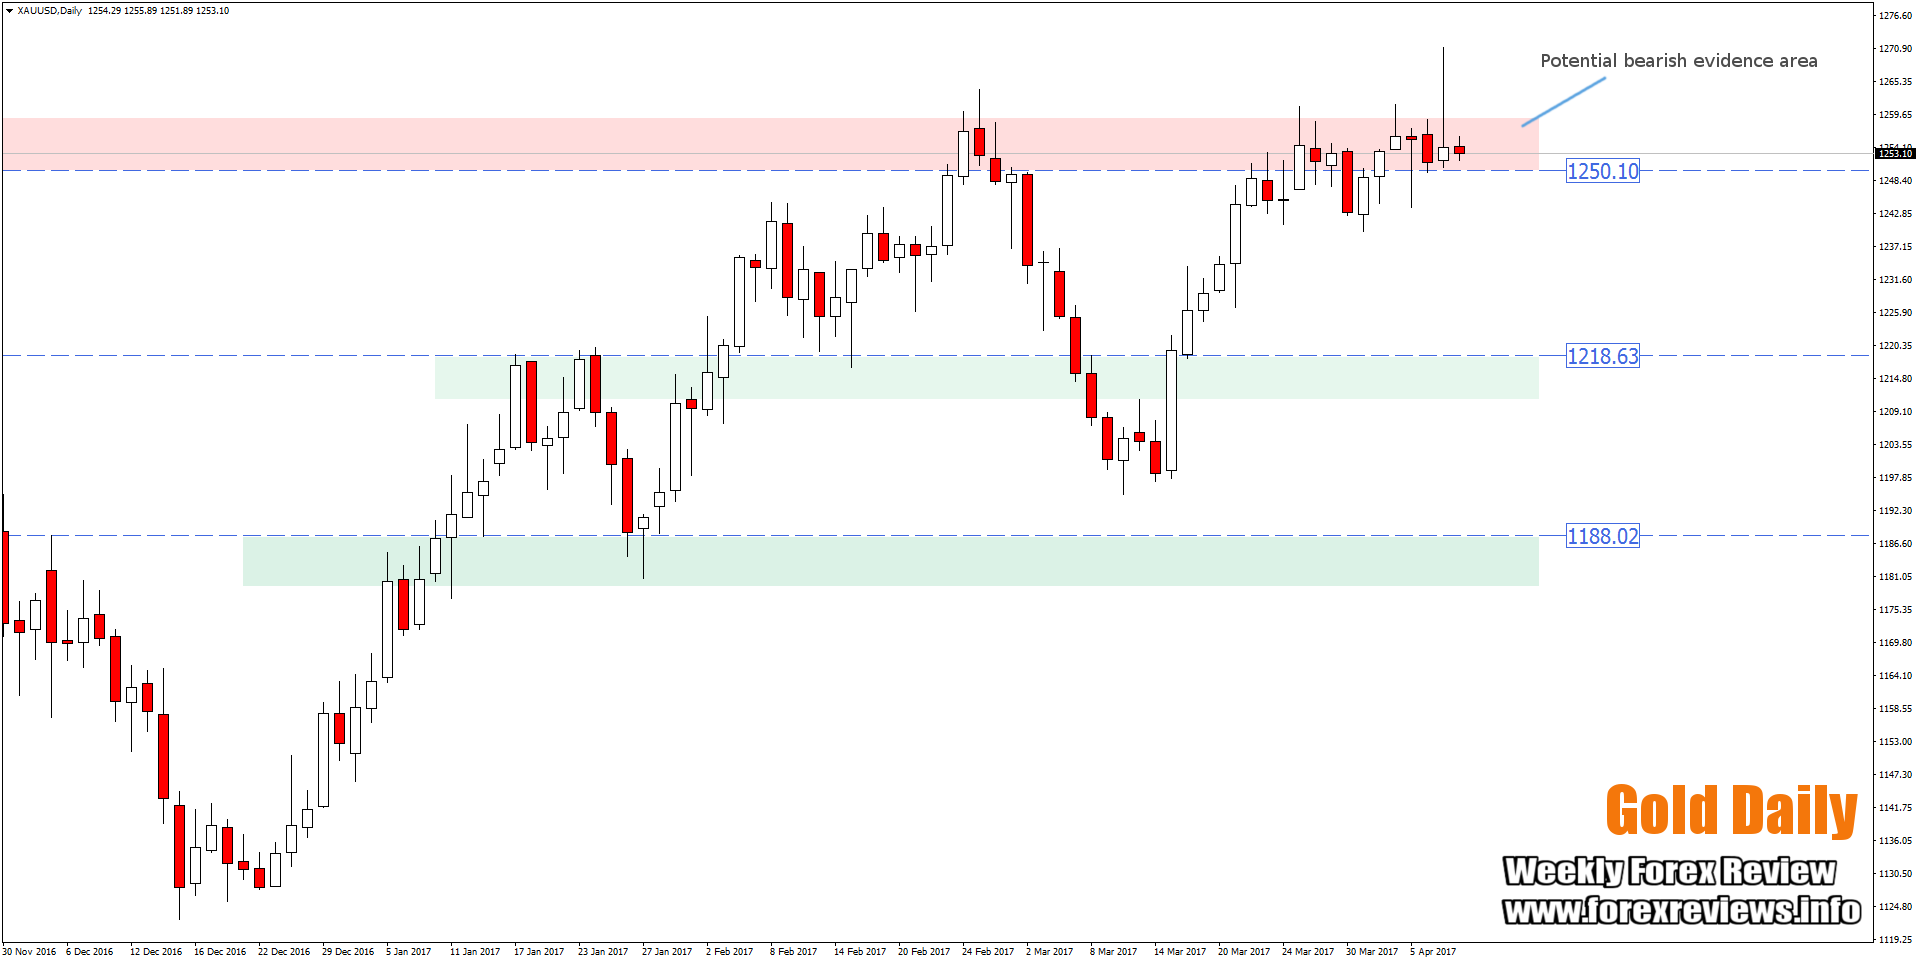 Gold Daily 1250 bearish evidence zone